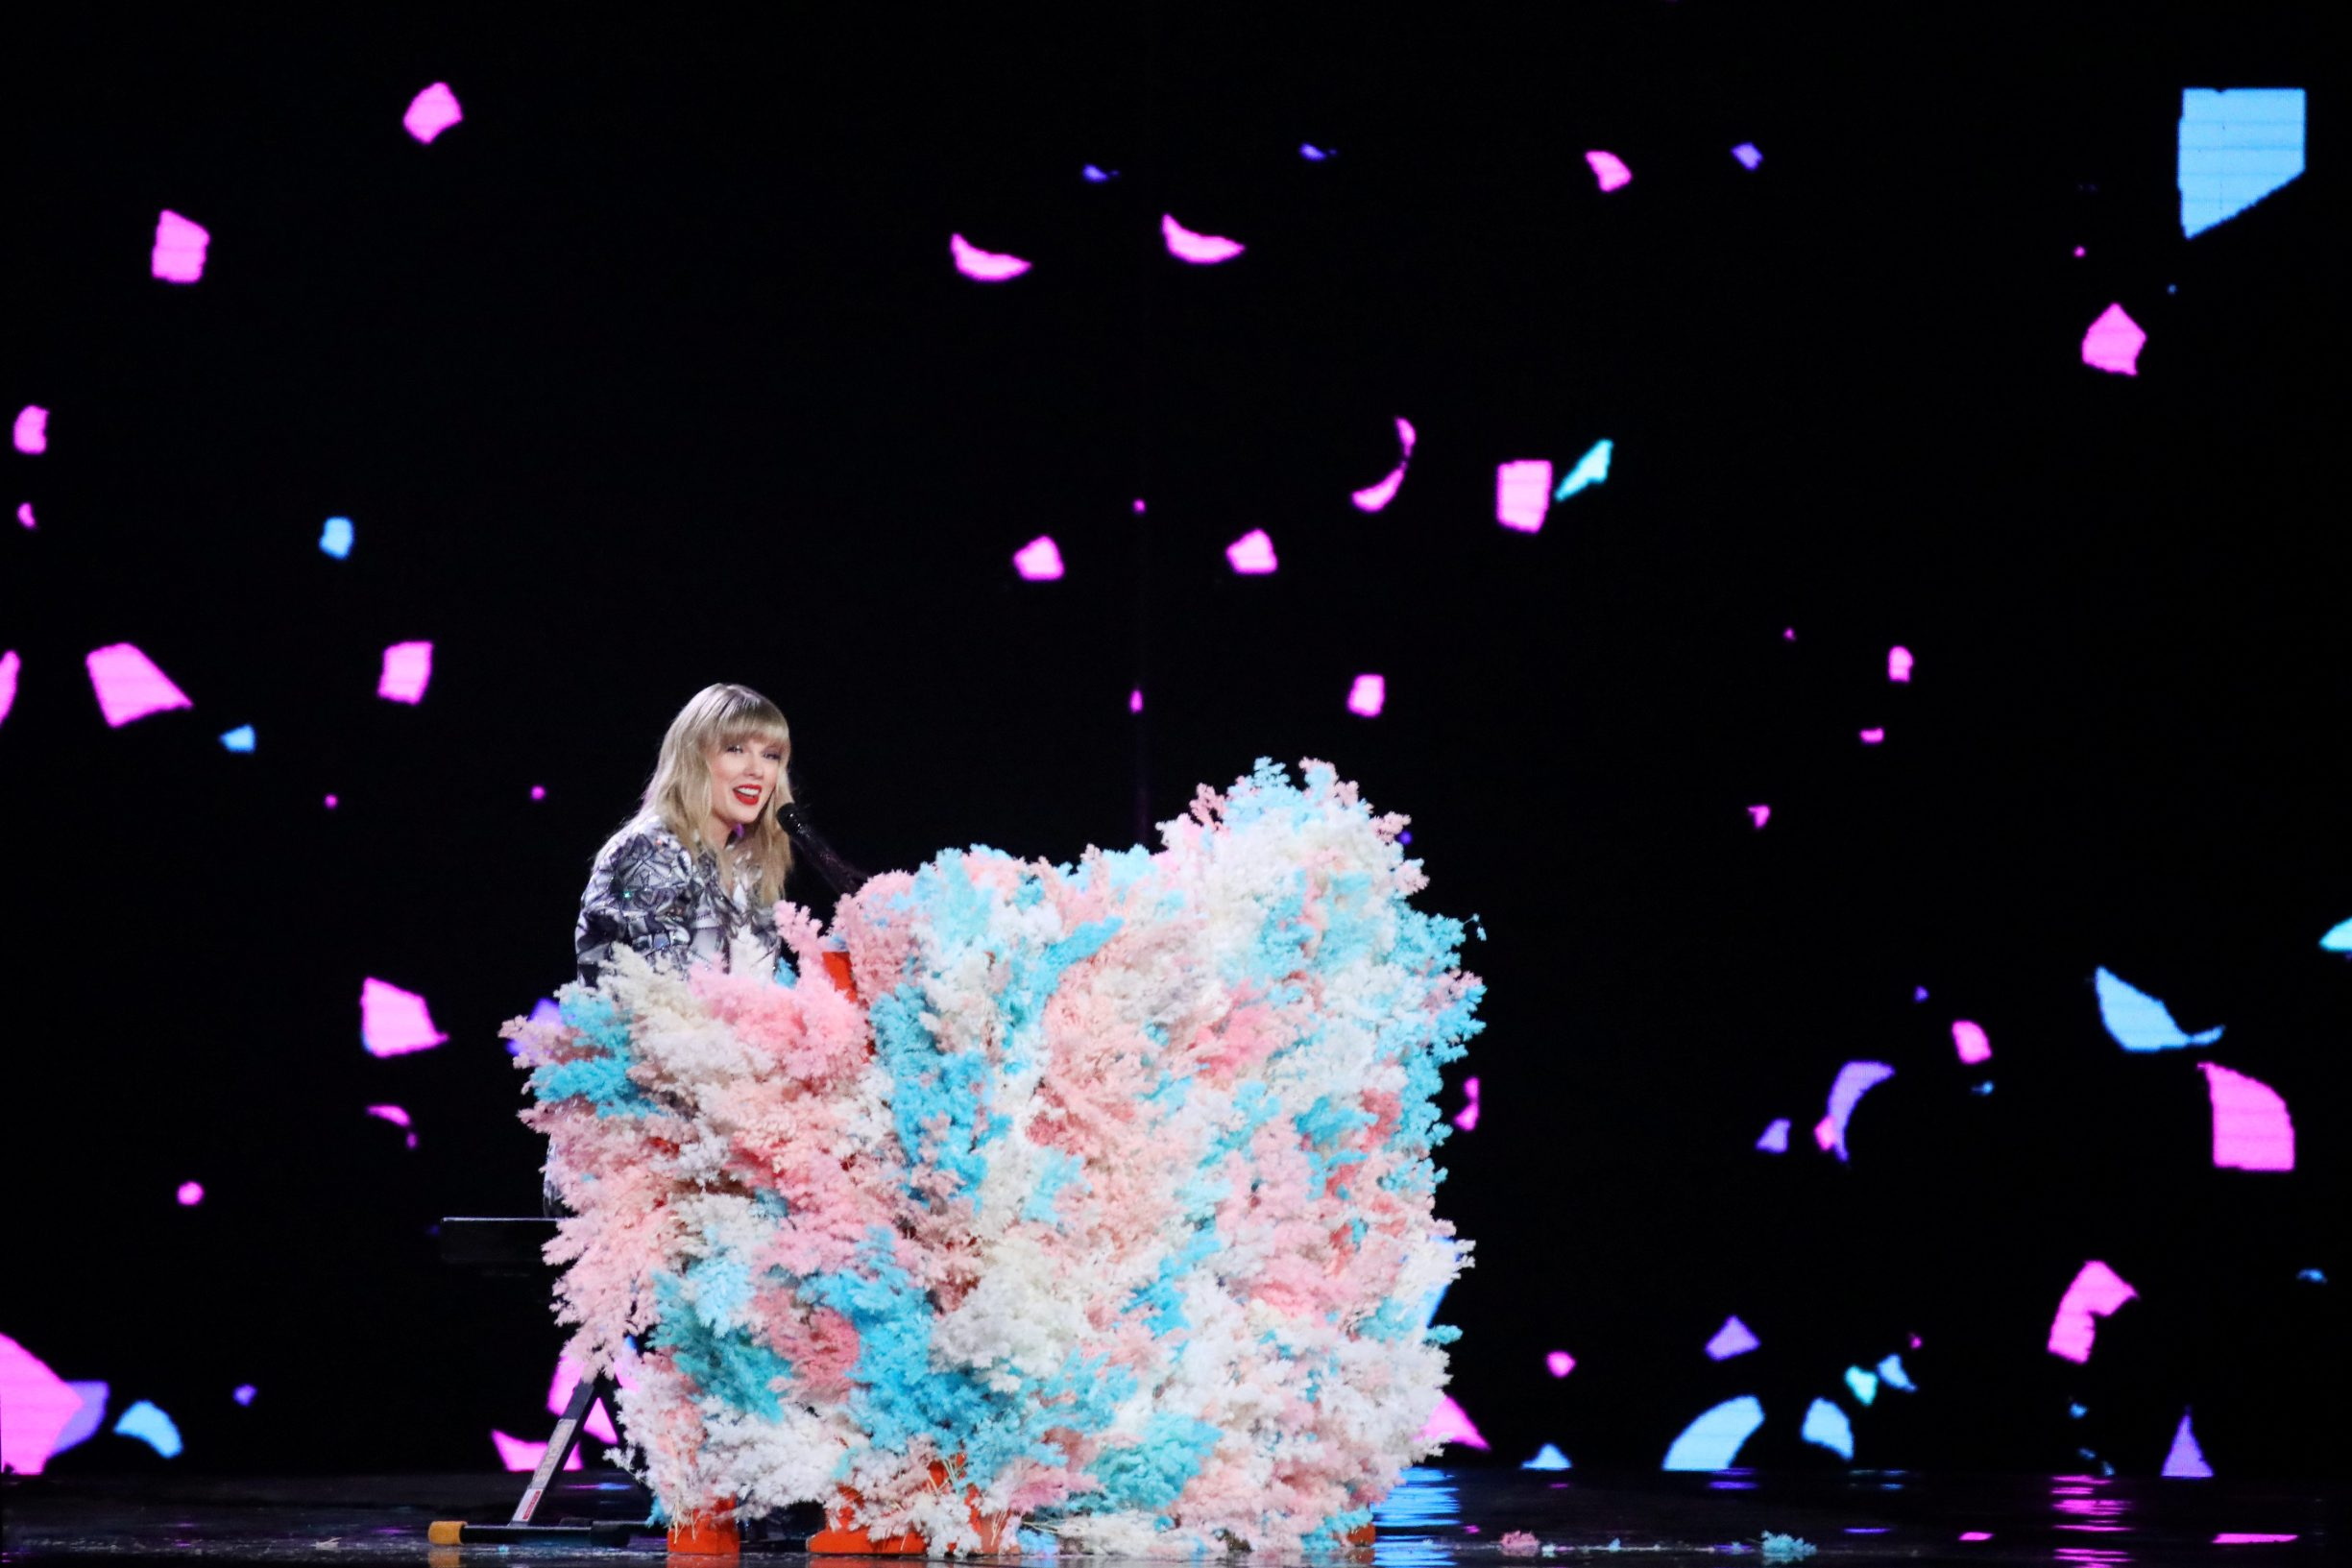 U.S. singer Taylor Swift performs at a show to mark Alibaba's 11.11 Singles' Day global shopping festival in Shanghai, China November 10, 2019. Picture taken November 10, 2019. REUTERS/Stringer  ATTENTION EDITORS - THIS IMAGE WAS PROVIDED BY A THIRD PARTY. CHINA OUT.